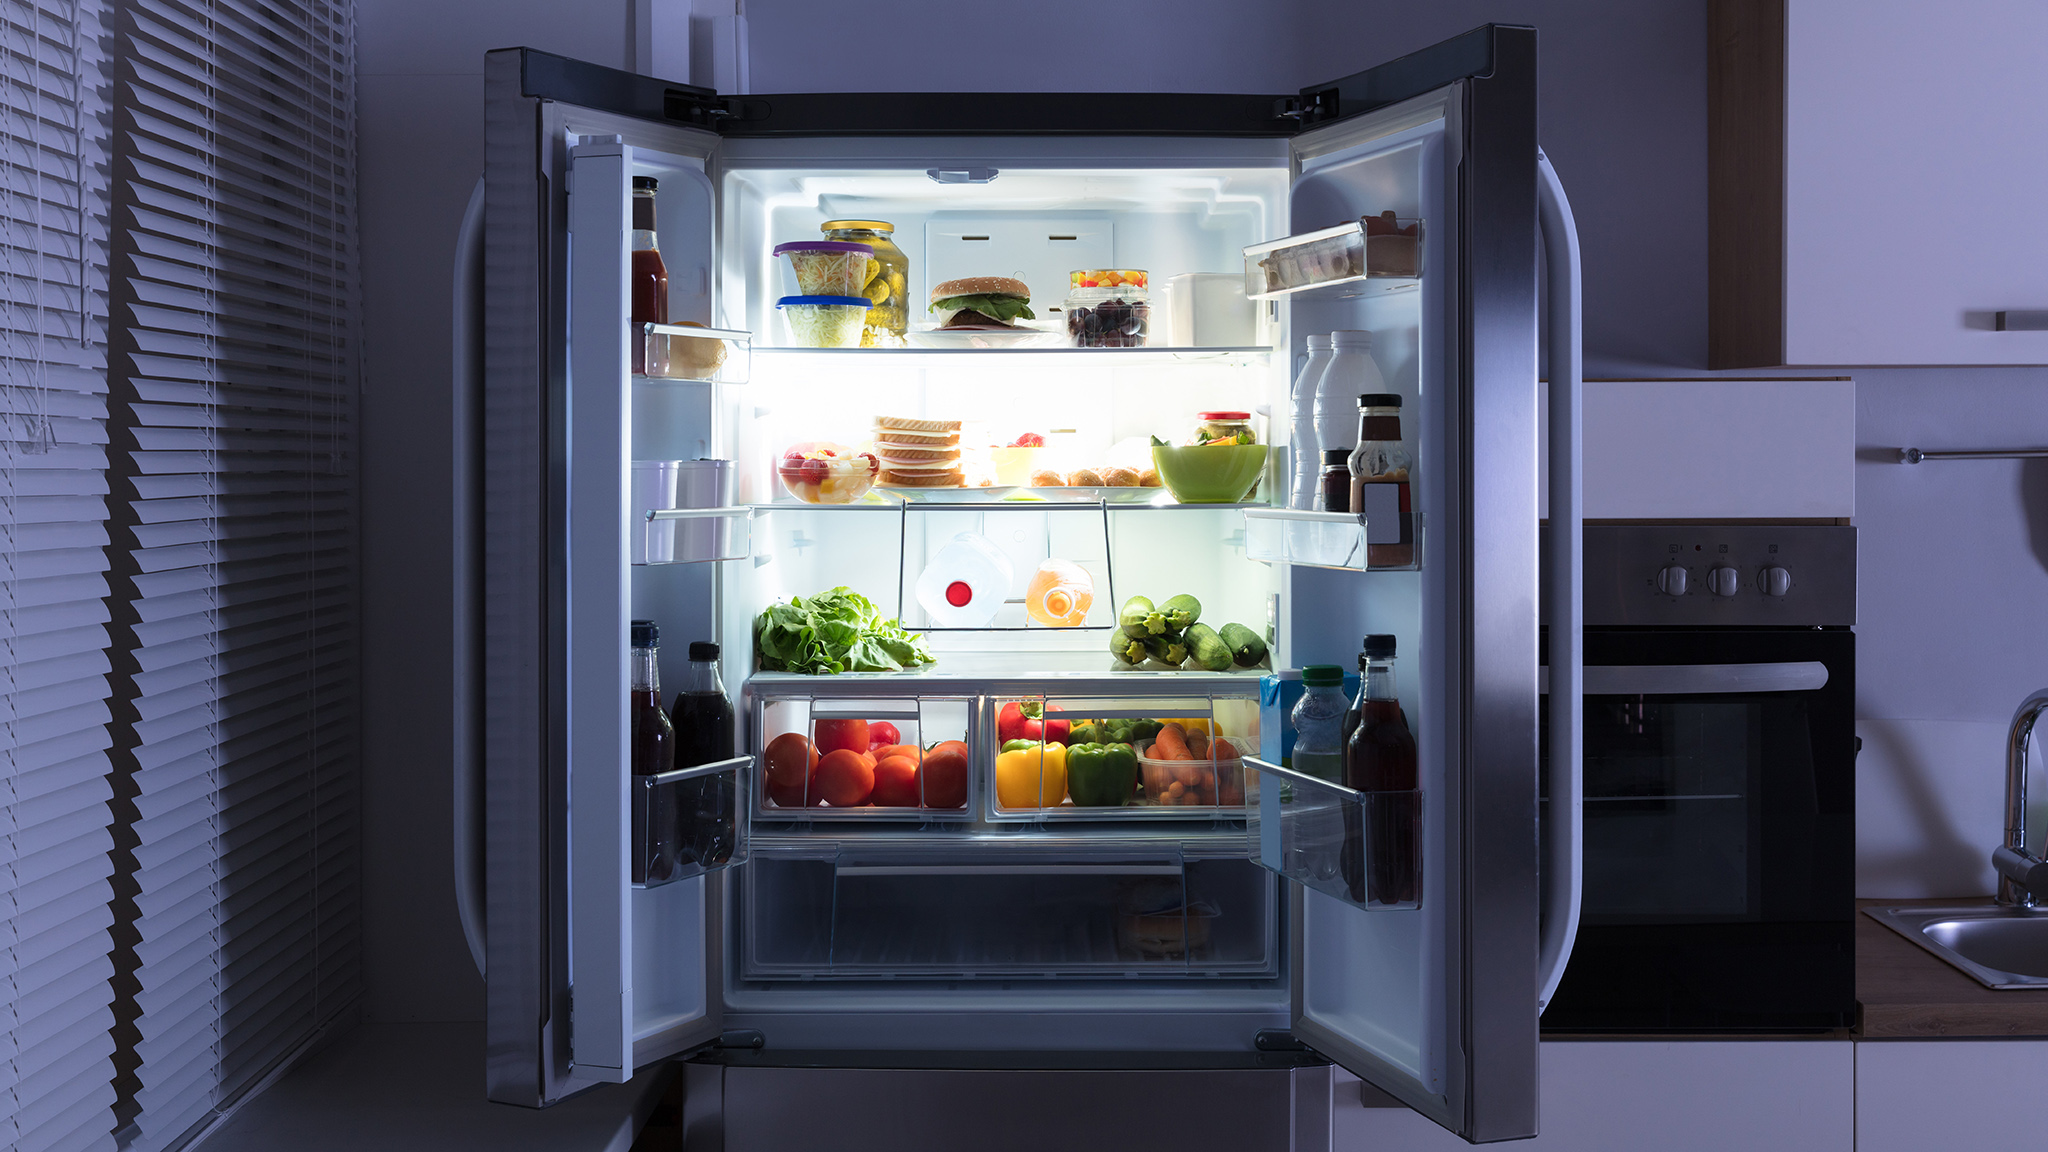 When fridges attack: why hackers could target the grid | Financial Times